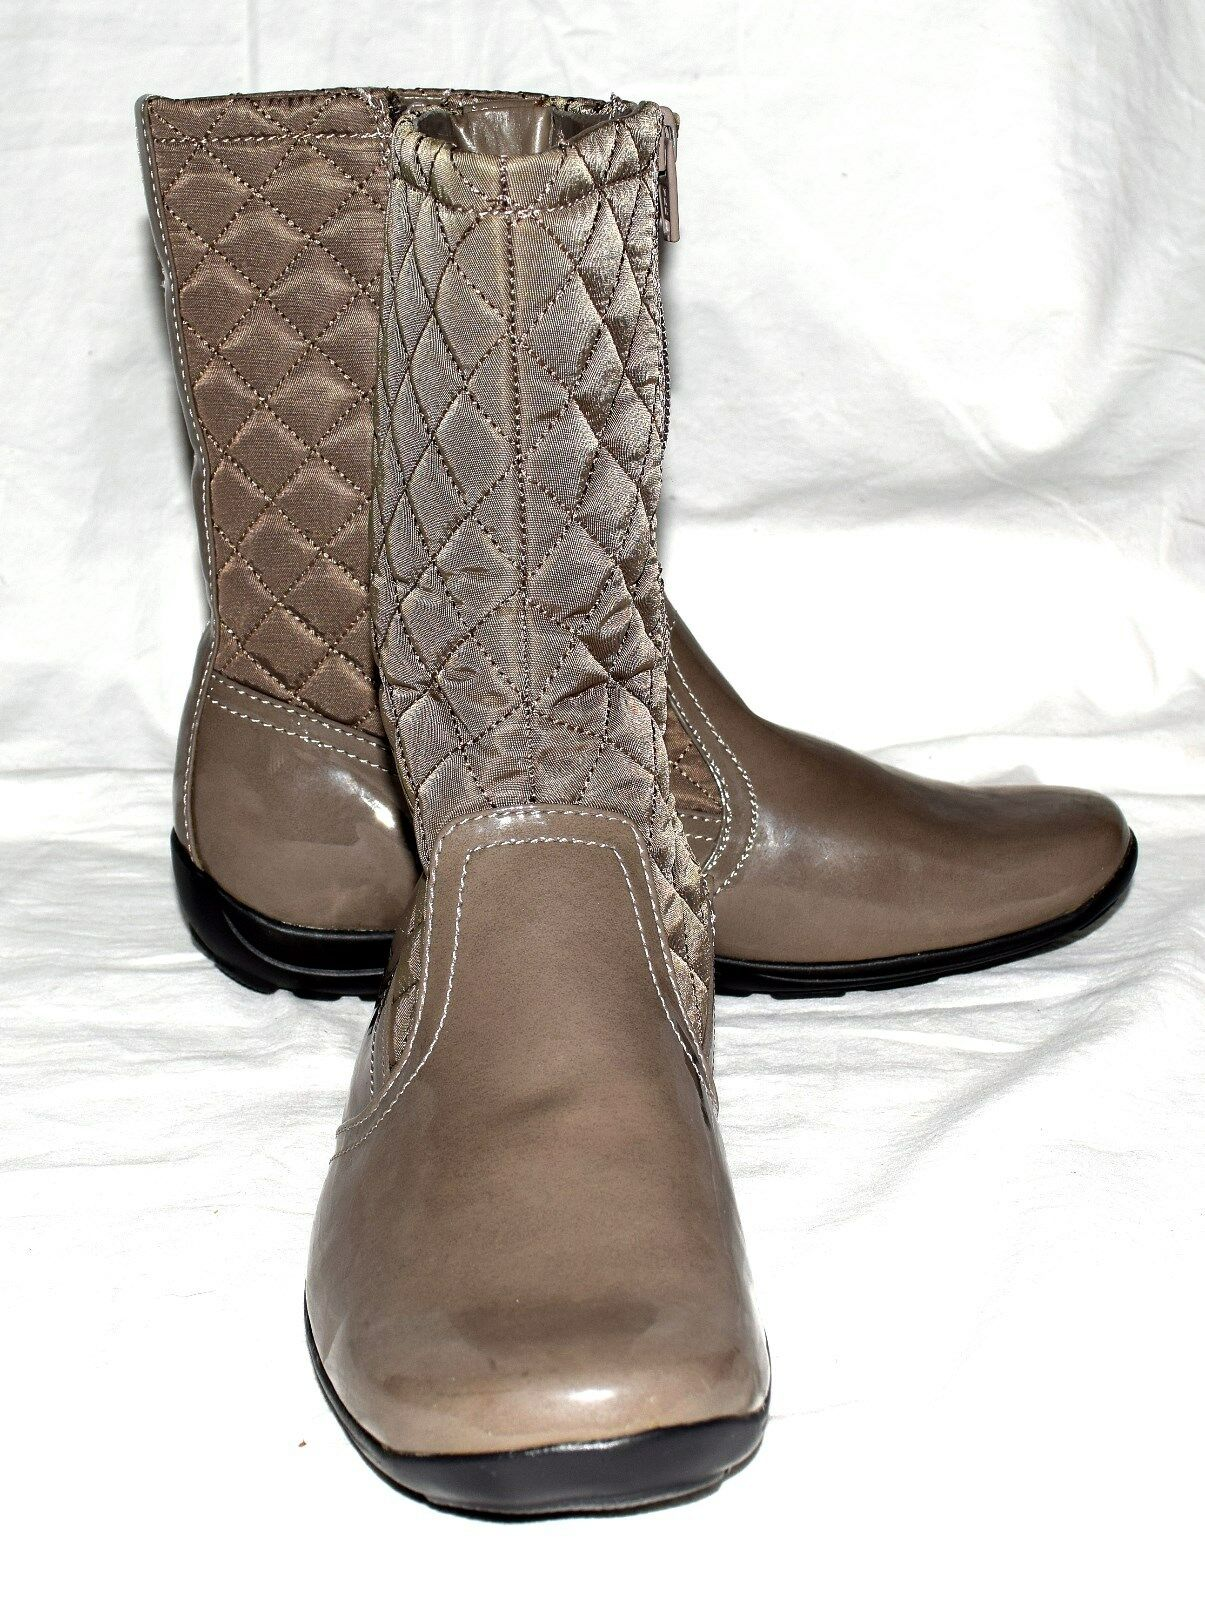 Naturalizer FINN Taupe Faux Patent Leather & Quilted Fabric Boots Size 6M NWOB